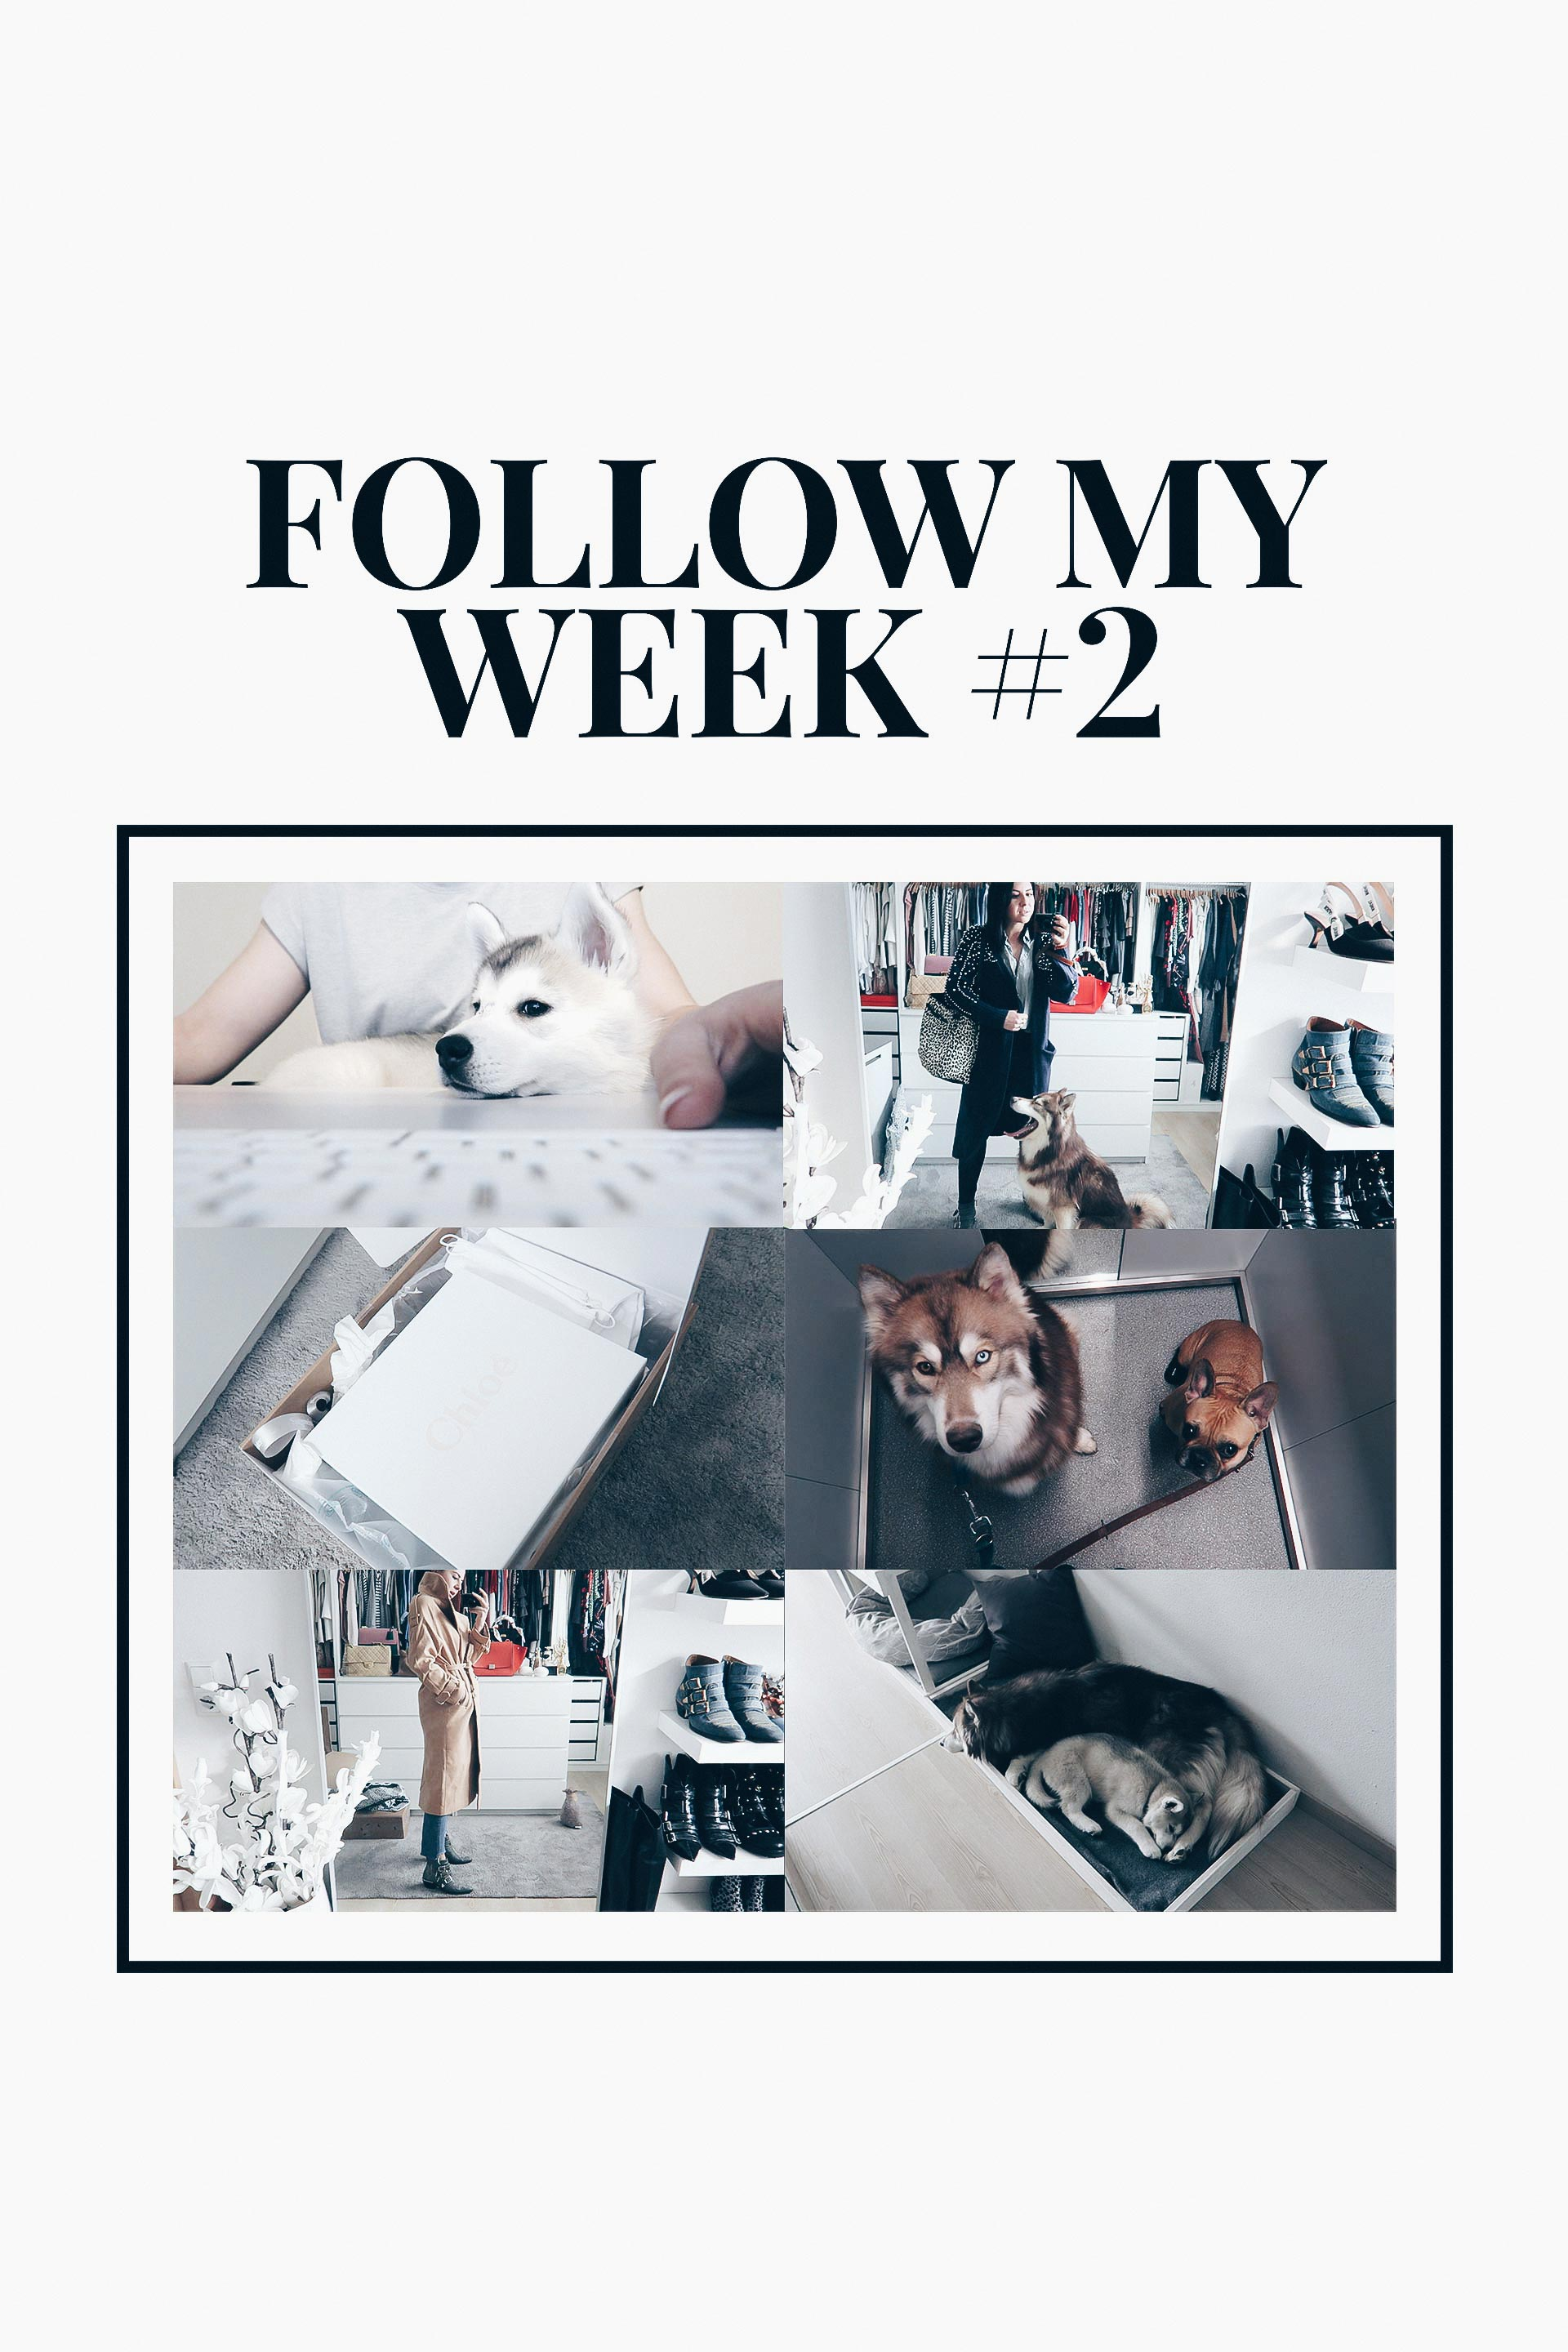 Follow My Week, Weekly Vlog, Vlogs auf Deutsch, Vlogger Österreich, Leben und Alltag mit Hund, Blogger Home Office, Arbeitsalltag, Shopping Haul, Ankleideraum, www.whoismocca.com